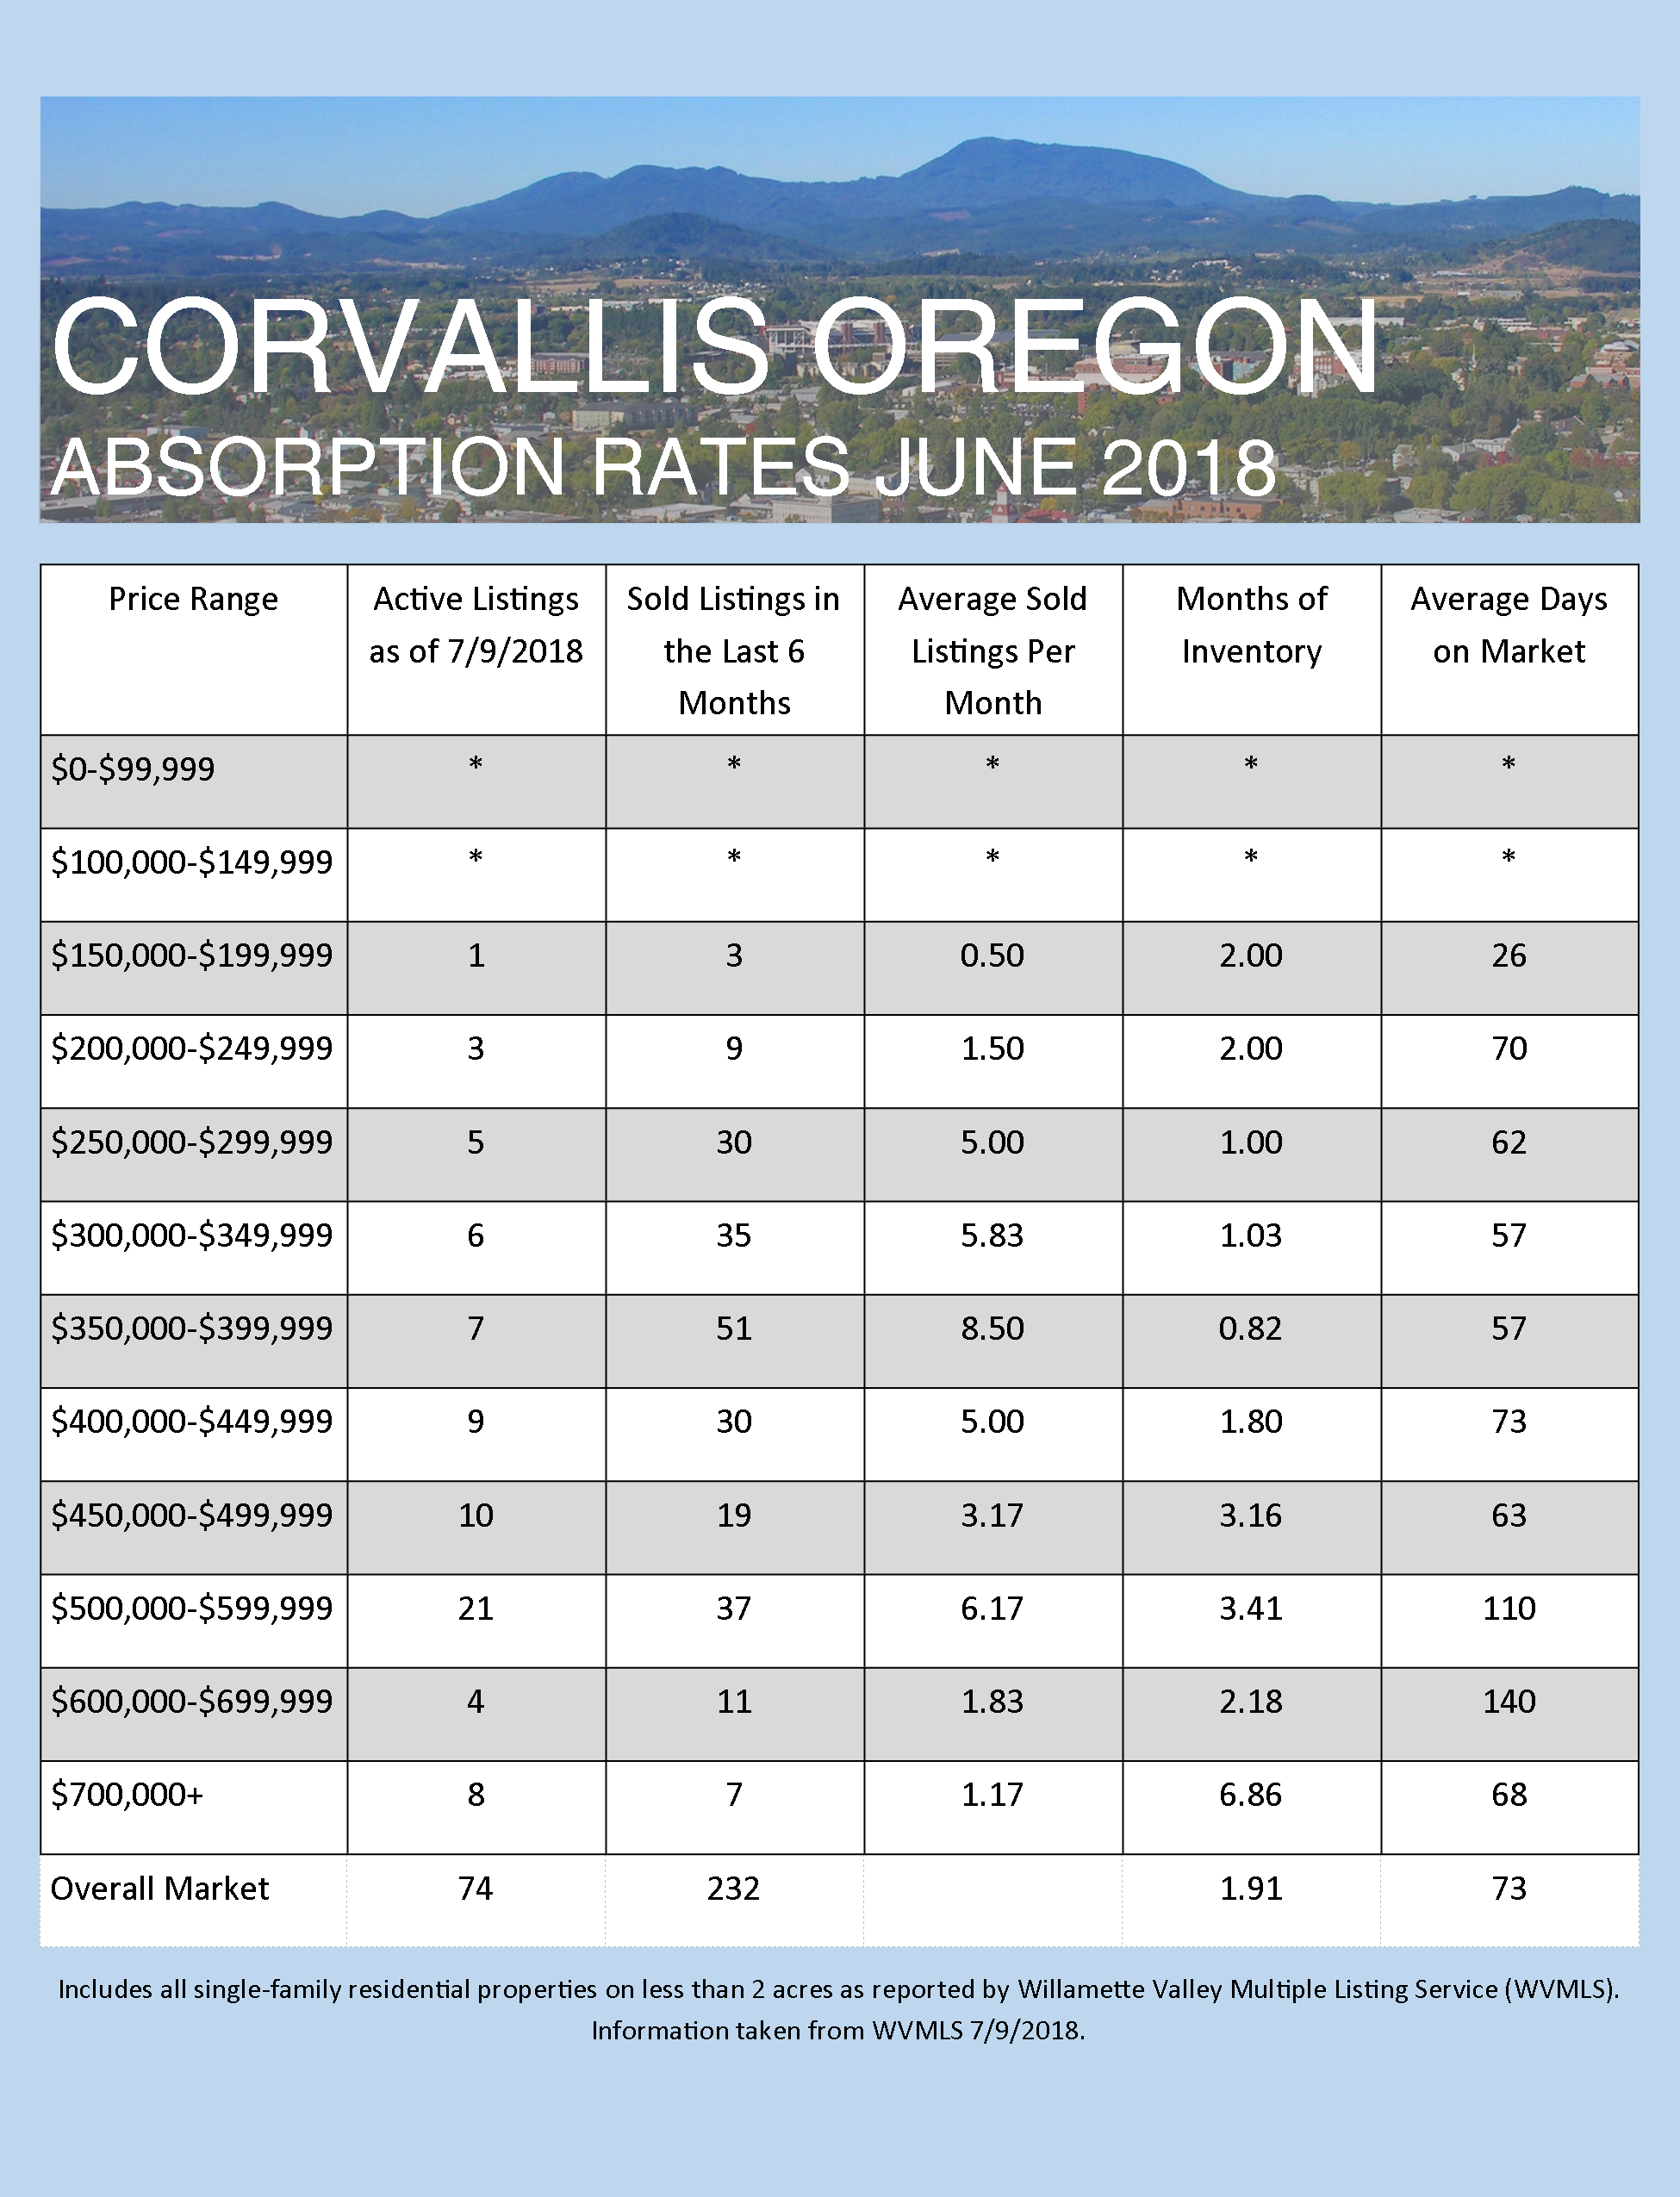 June 2018 Absorption Rates for Albany and Corvallis